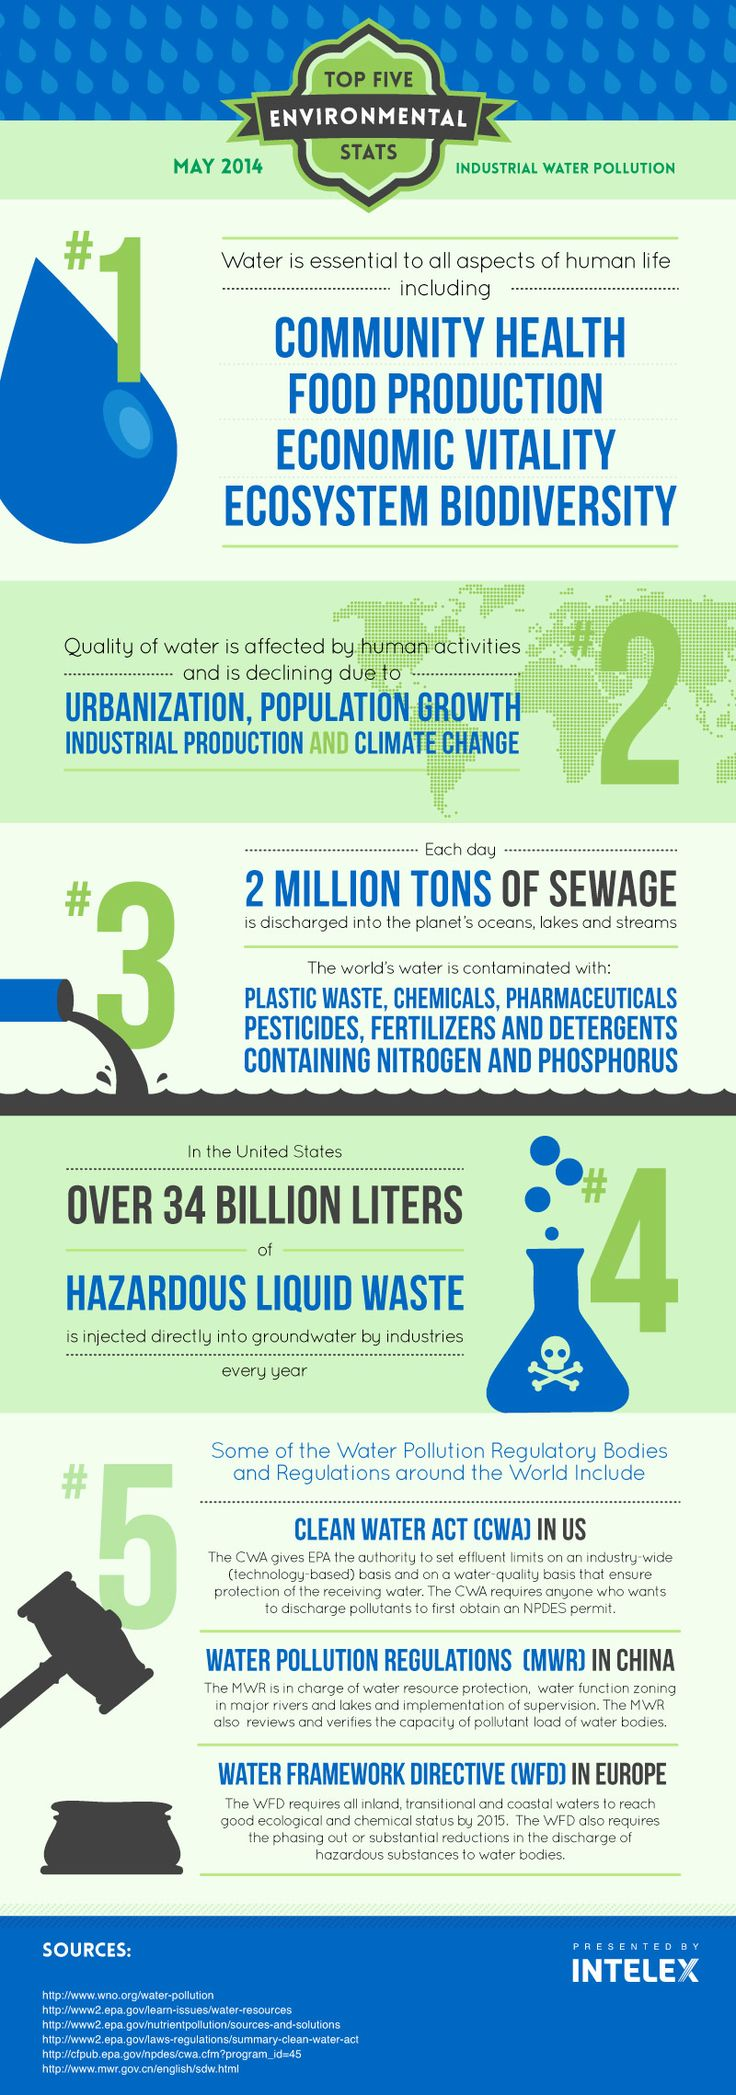 Top 5 Environmental Stats – Industrial Water Pollution (Infographic) ) #intelex #water #waterquality #waterpollution #pollution #environment #sustainability #sewage #industrialwaste #industrialpollution #industrialization